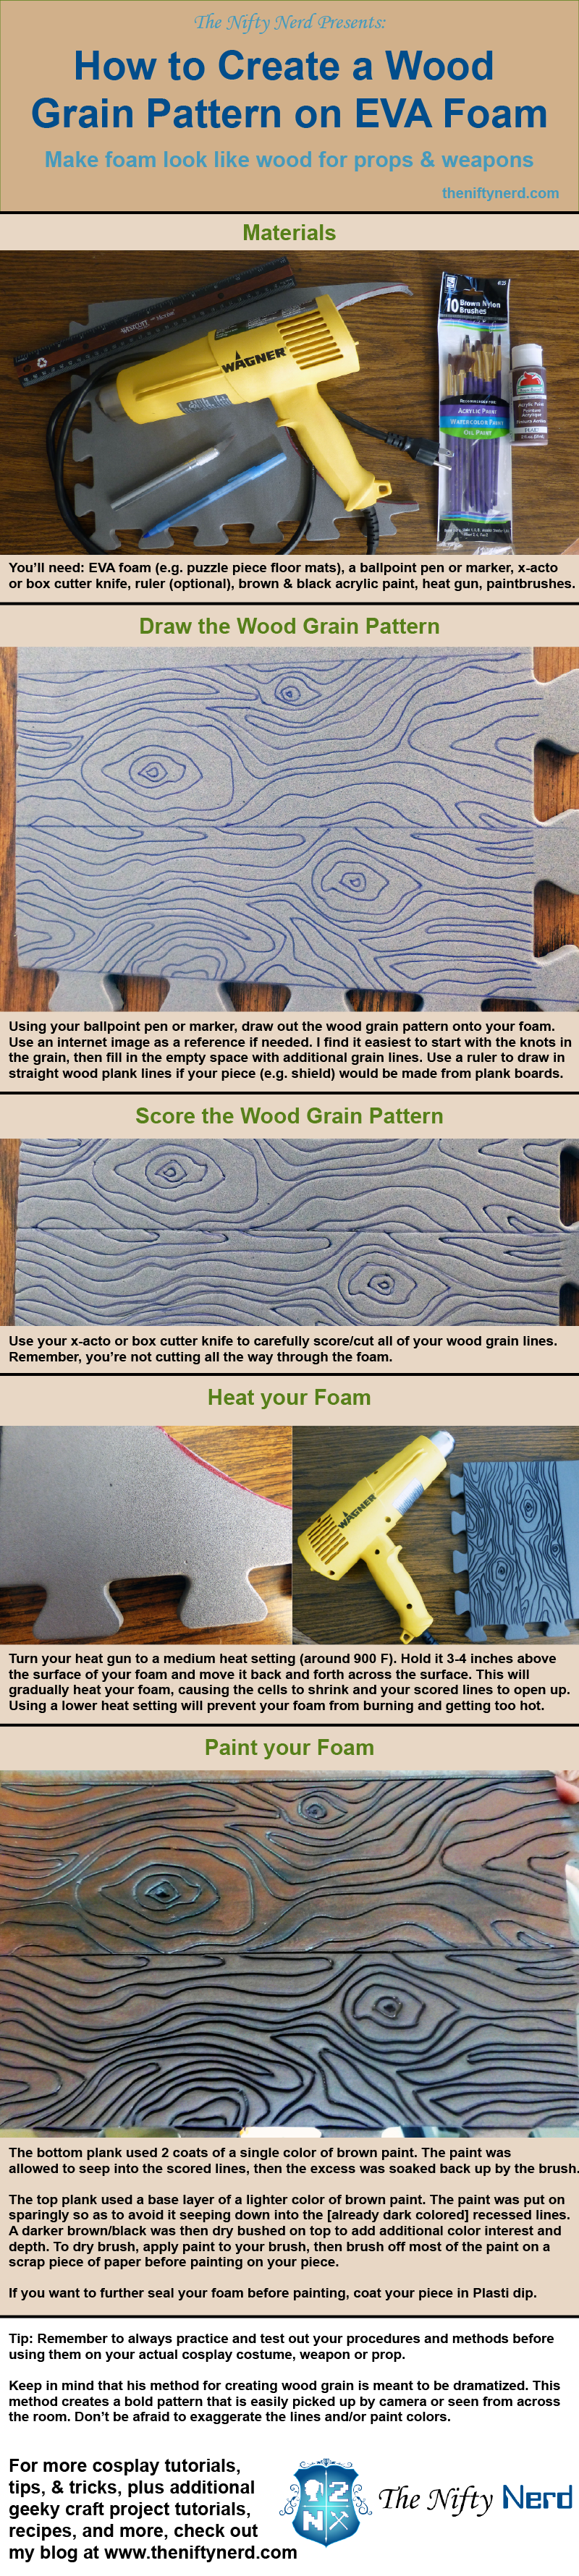 Infographic tutorial for creating a wood grain effect on foam